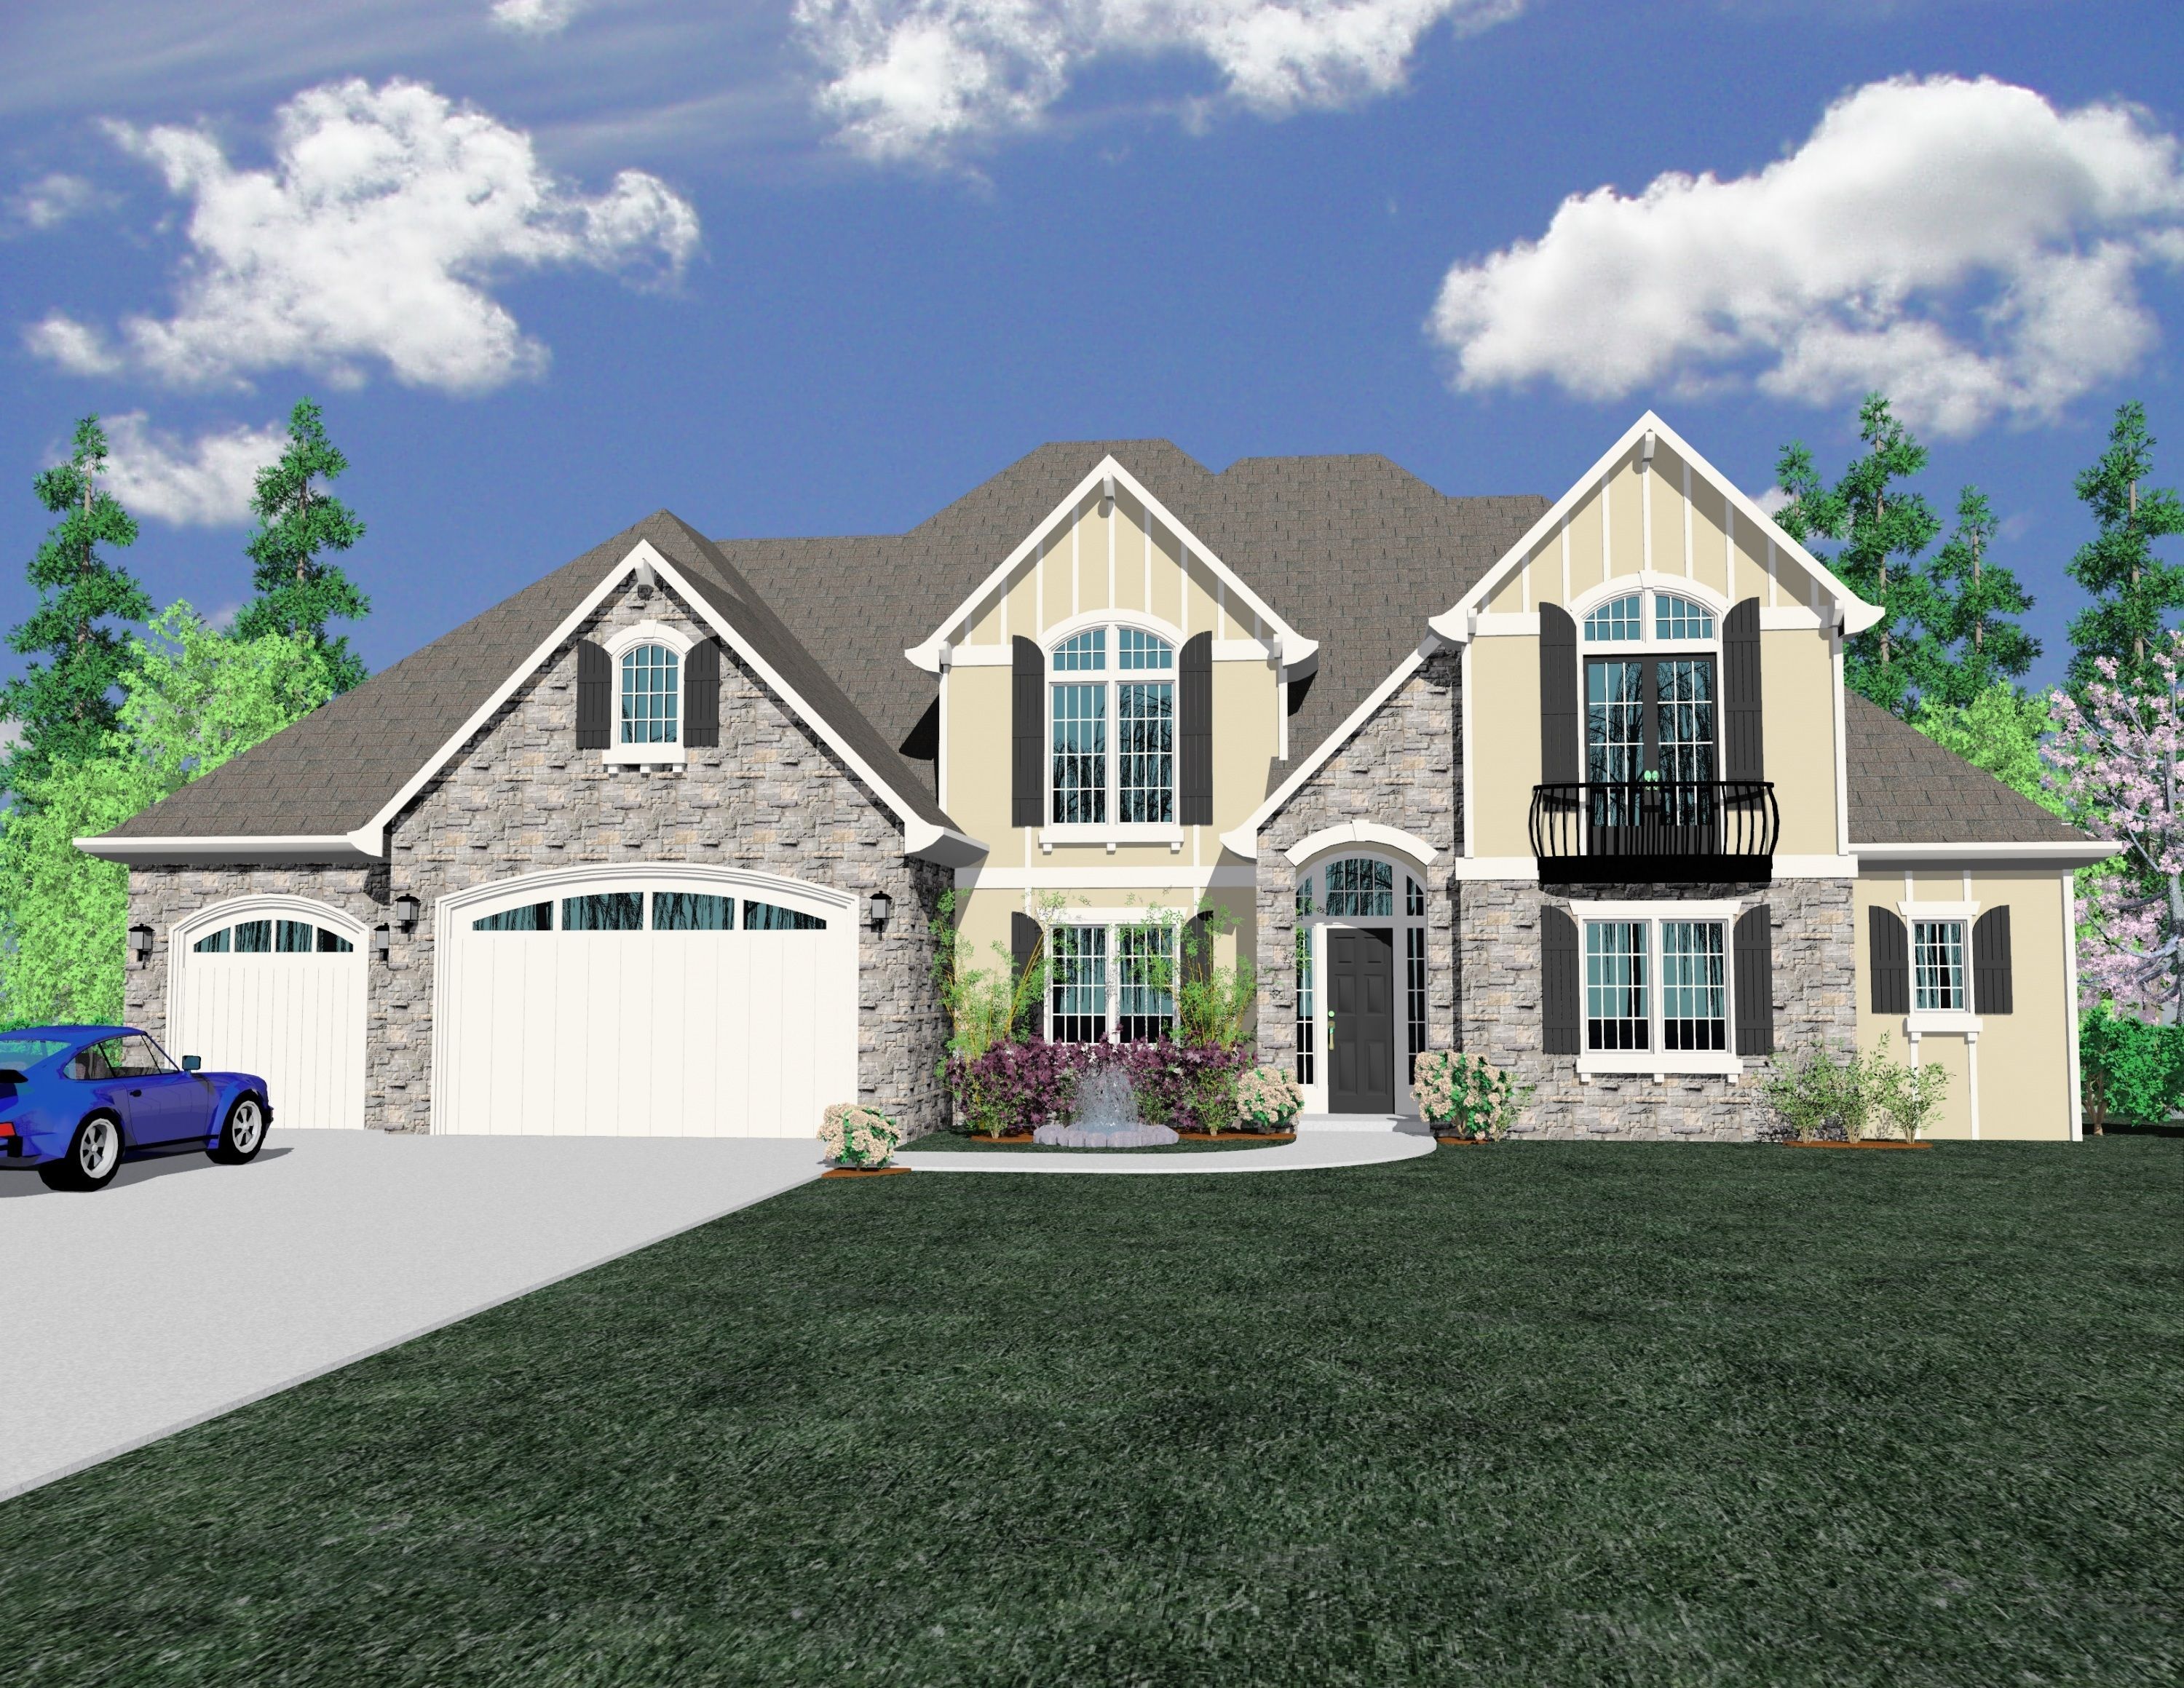 Hills View House Plan Modern Style House Plans House Plans French Country House Plans